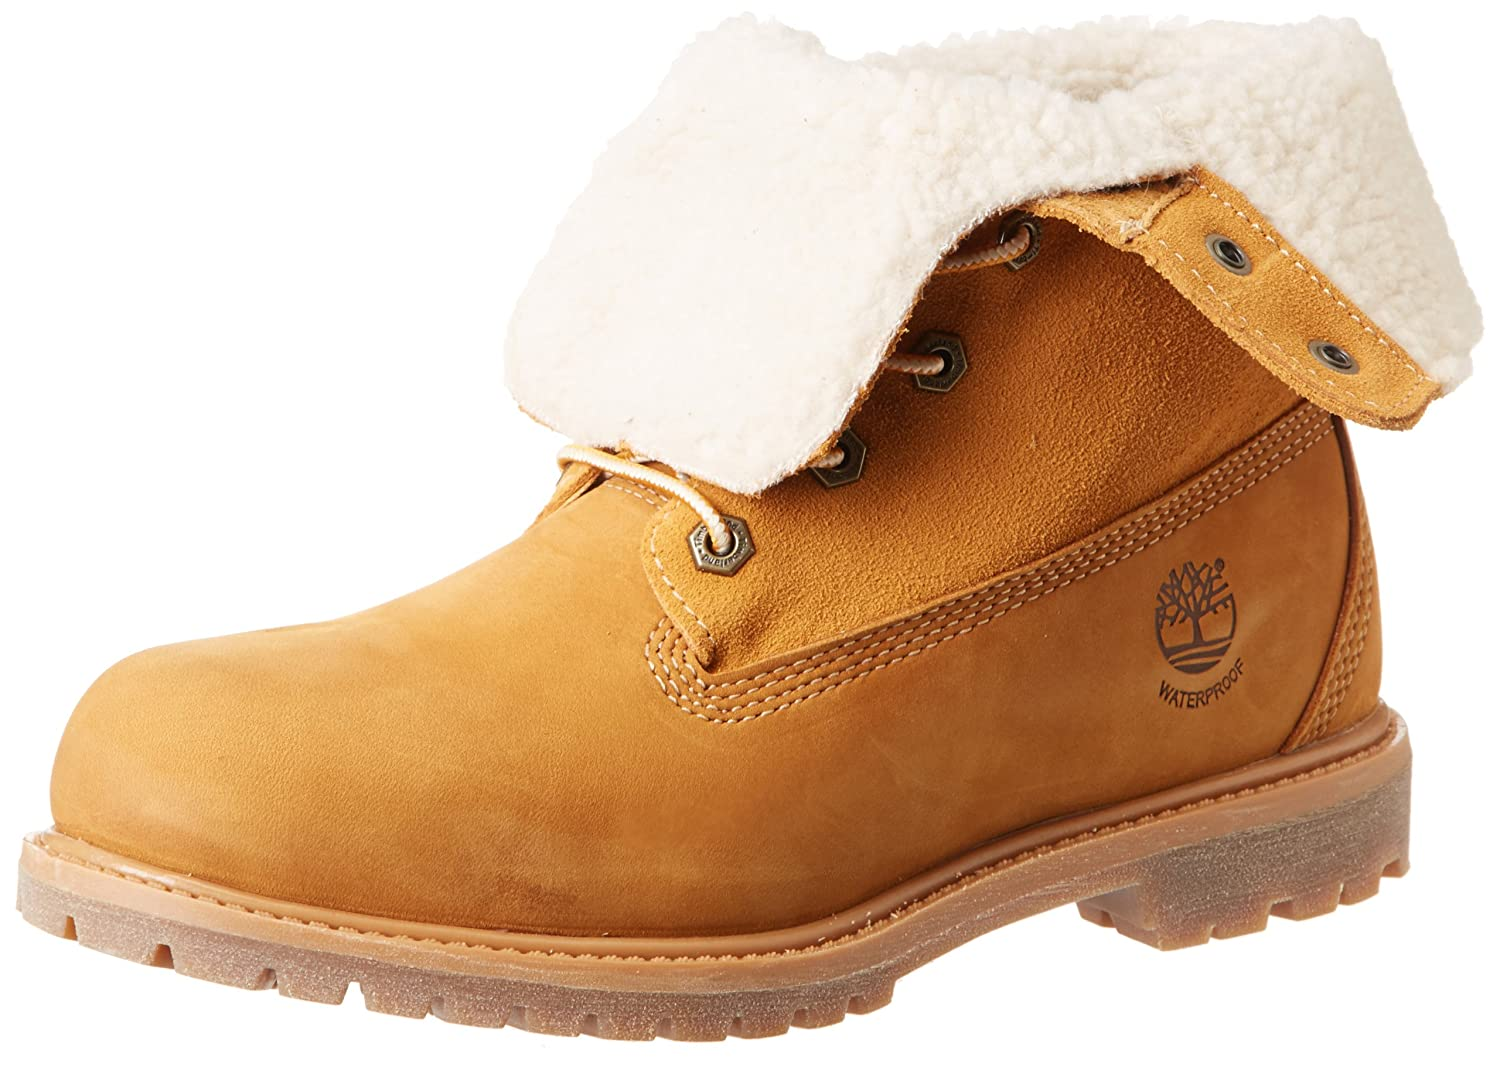 Timberland Auth Teddy Fleece Timberland Wp Wht, Boots Boots femme (Wheat) Jaune (Wheat) 2fc6316 - fast-weightloss-diet.space